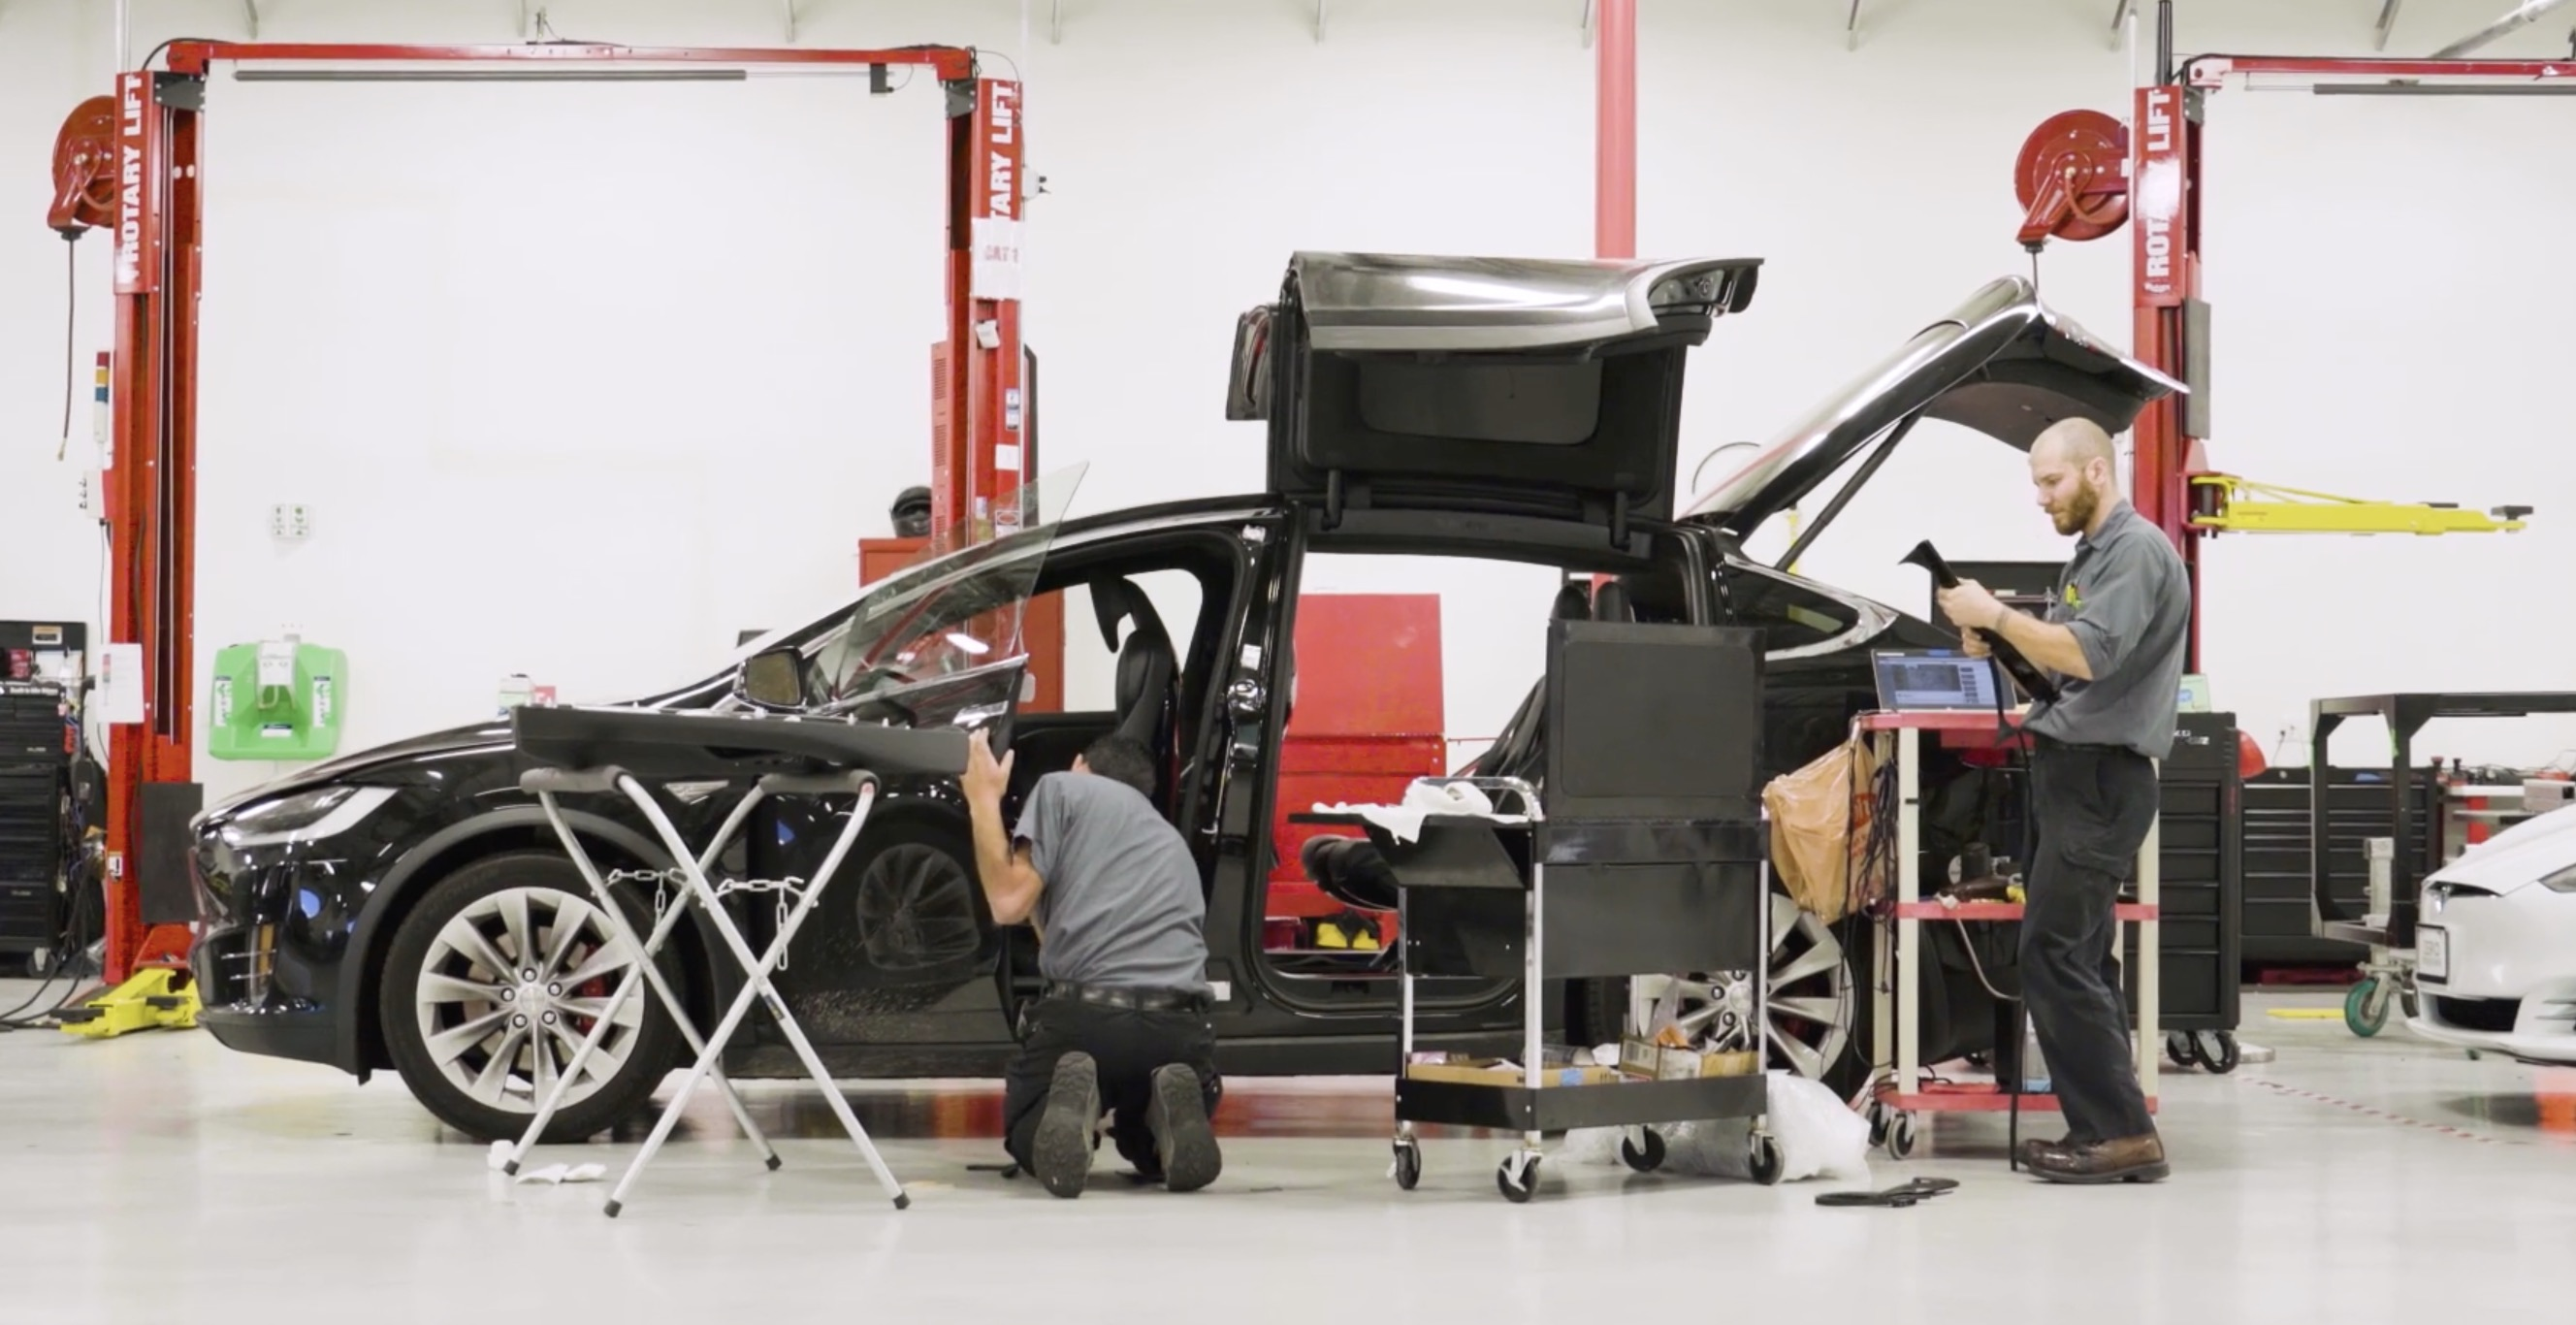 Tesla implements series of new initiatives to improve its service as its fleet grows rapidly